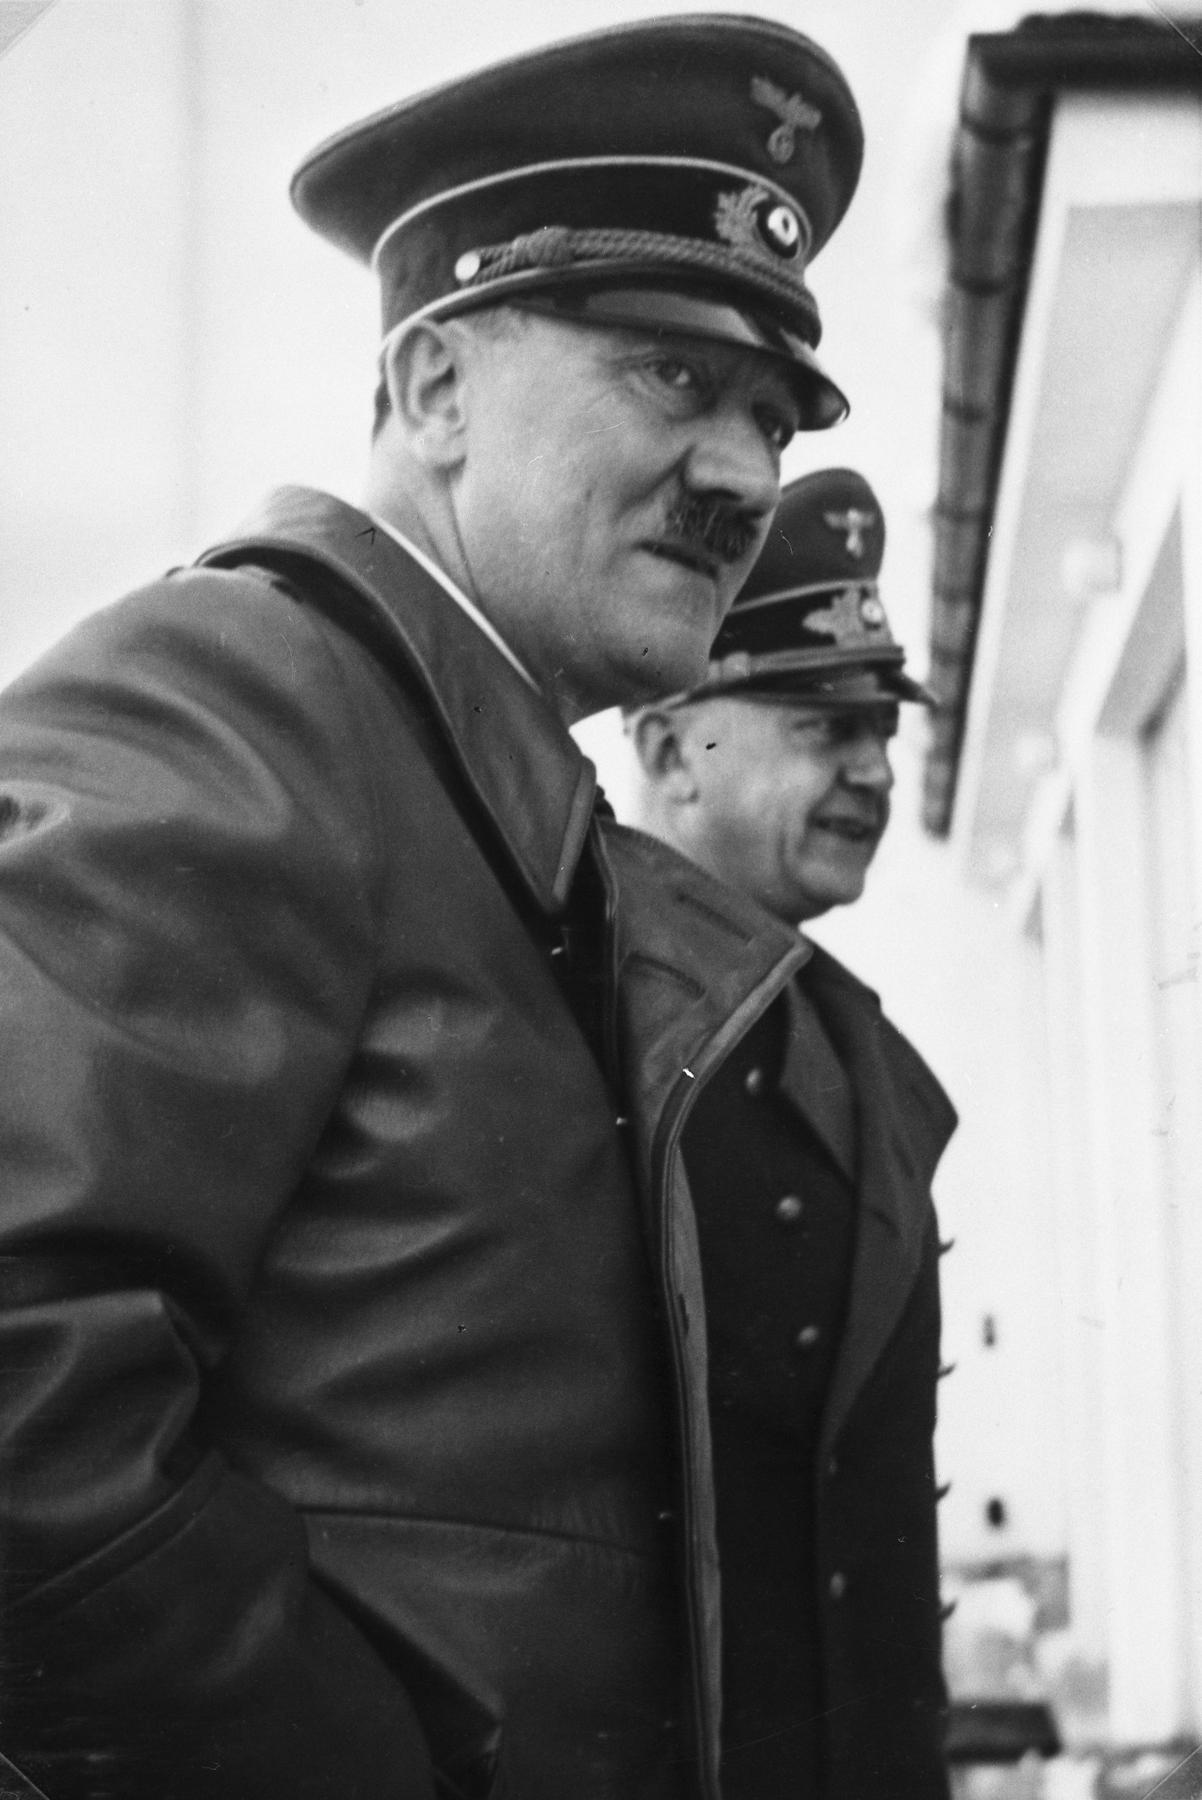 Adolf Hitler and Gauleiter Wagner on the Berghof terrace early January 1940, from Eva Braun's albums